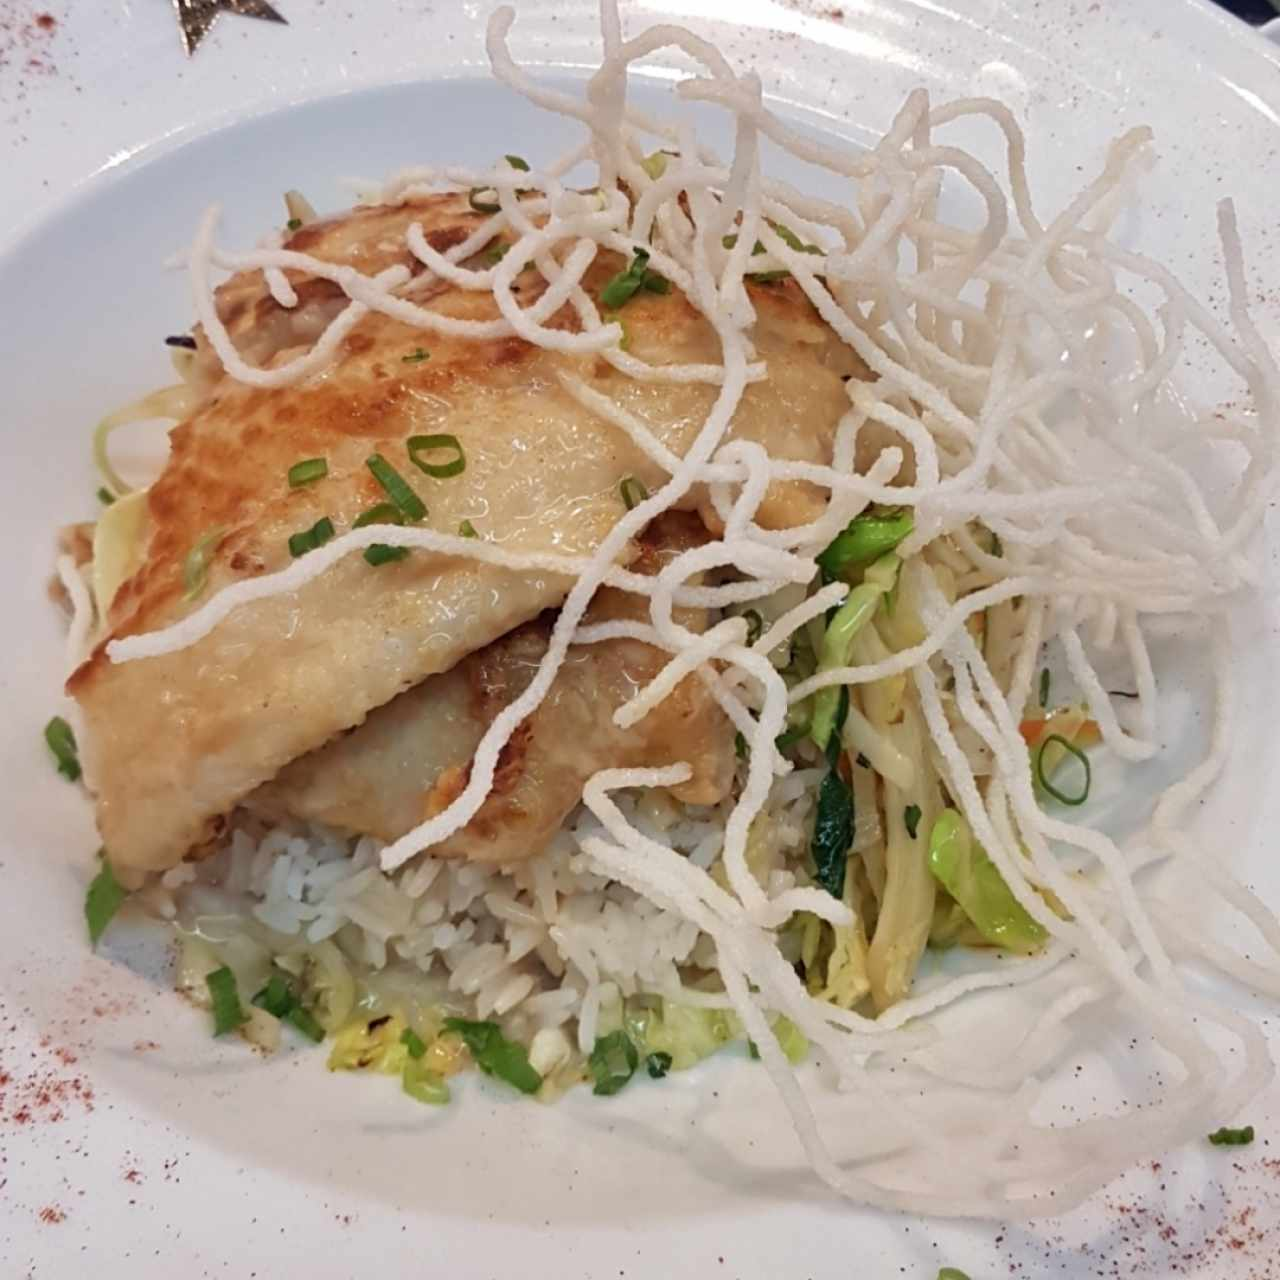 dumburi:pescado thai